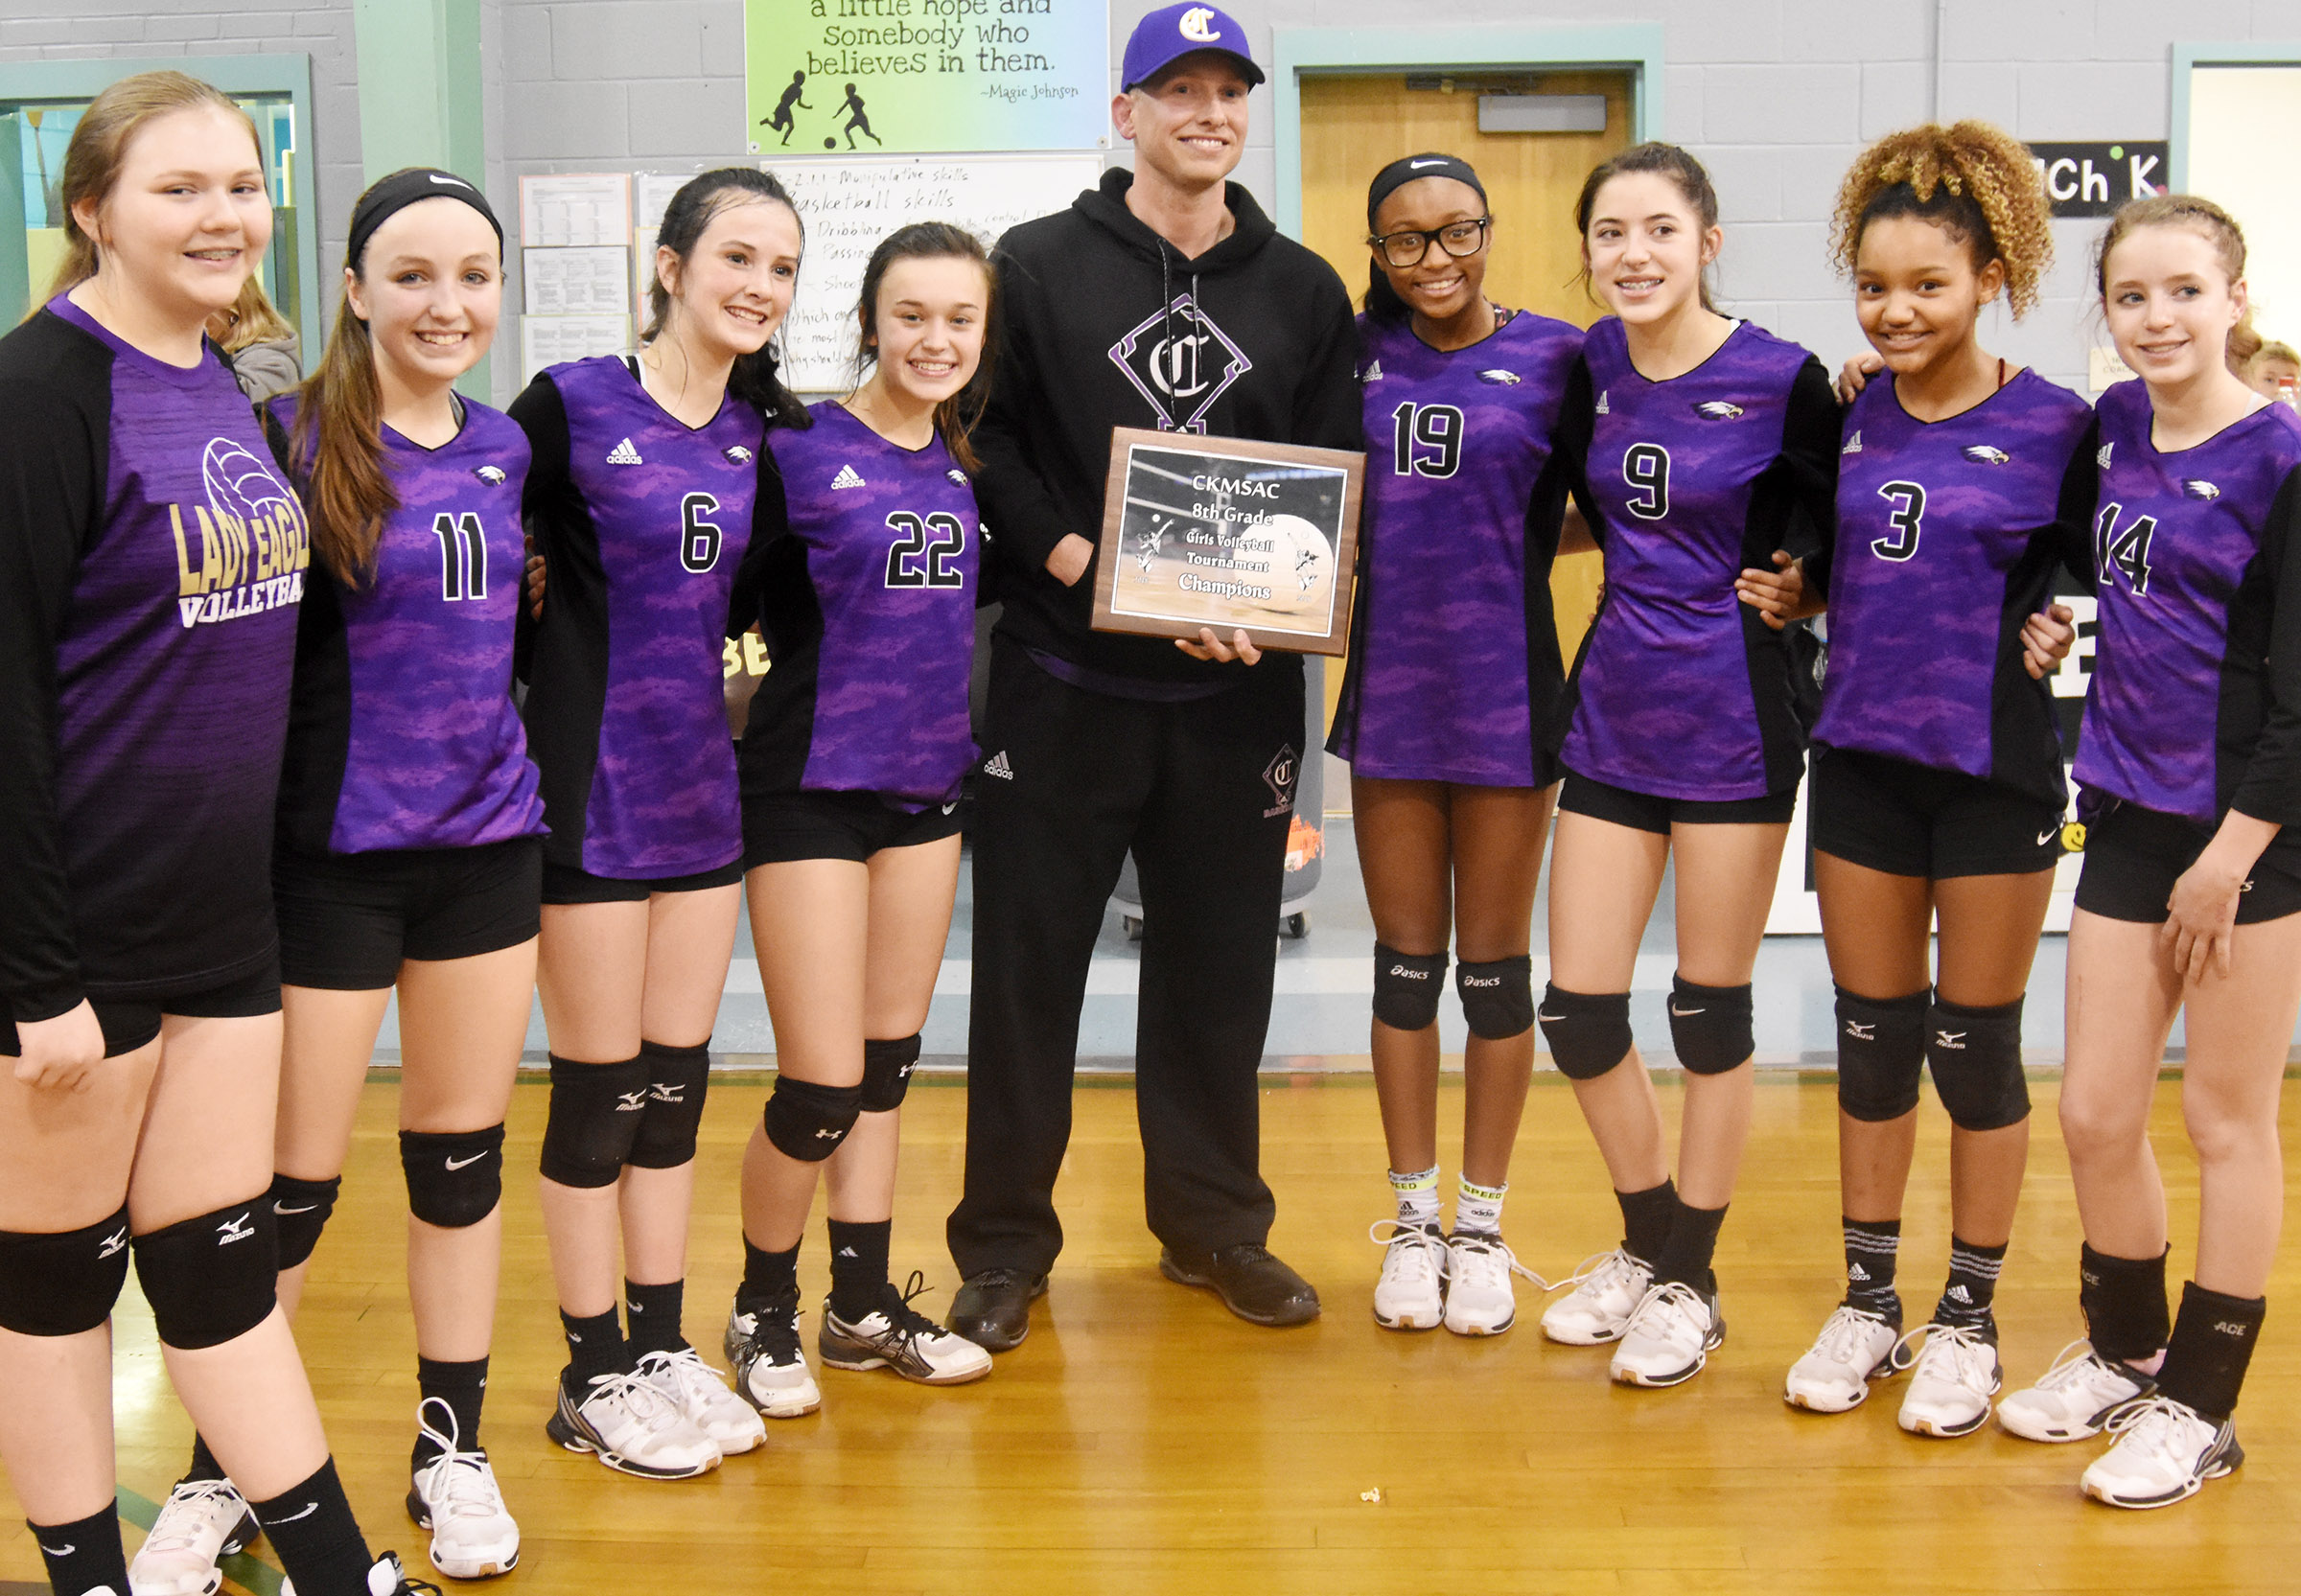 CMS eighth-grade volleyball players pose for a photo with Principal Zach Lewis. From left are Isabella Vannice, Lainey Watson, Sarah Adkins, Tayler Thompson, Bri Gowdy, Kaylyn Smith, Alexis Thomas and Rylee Petett.